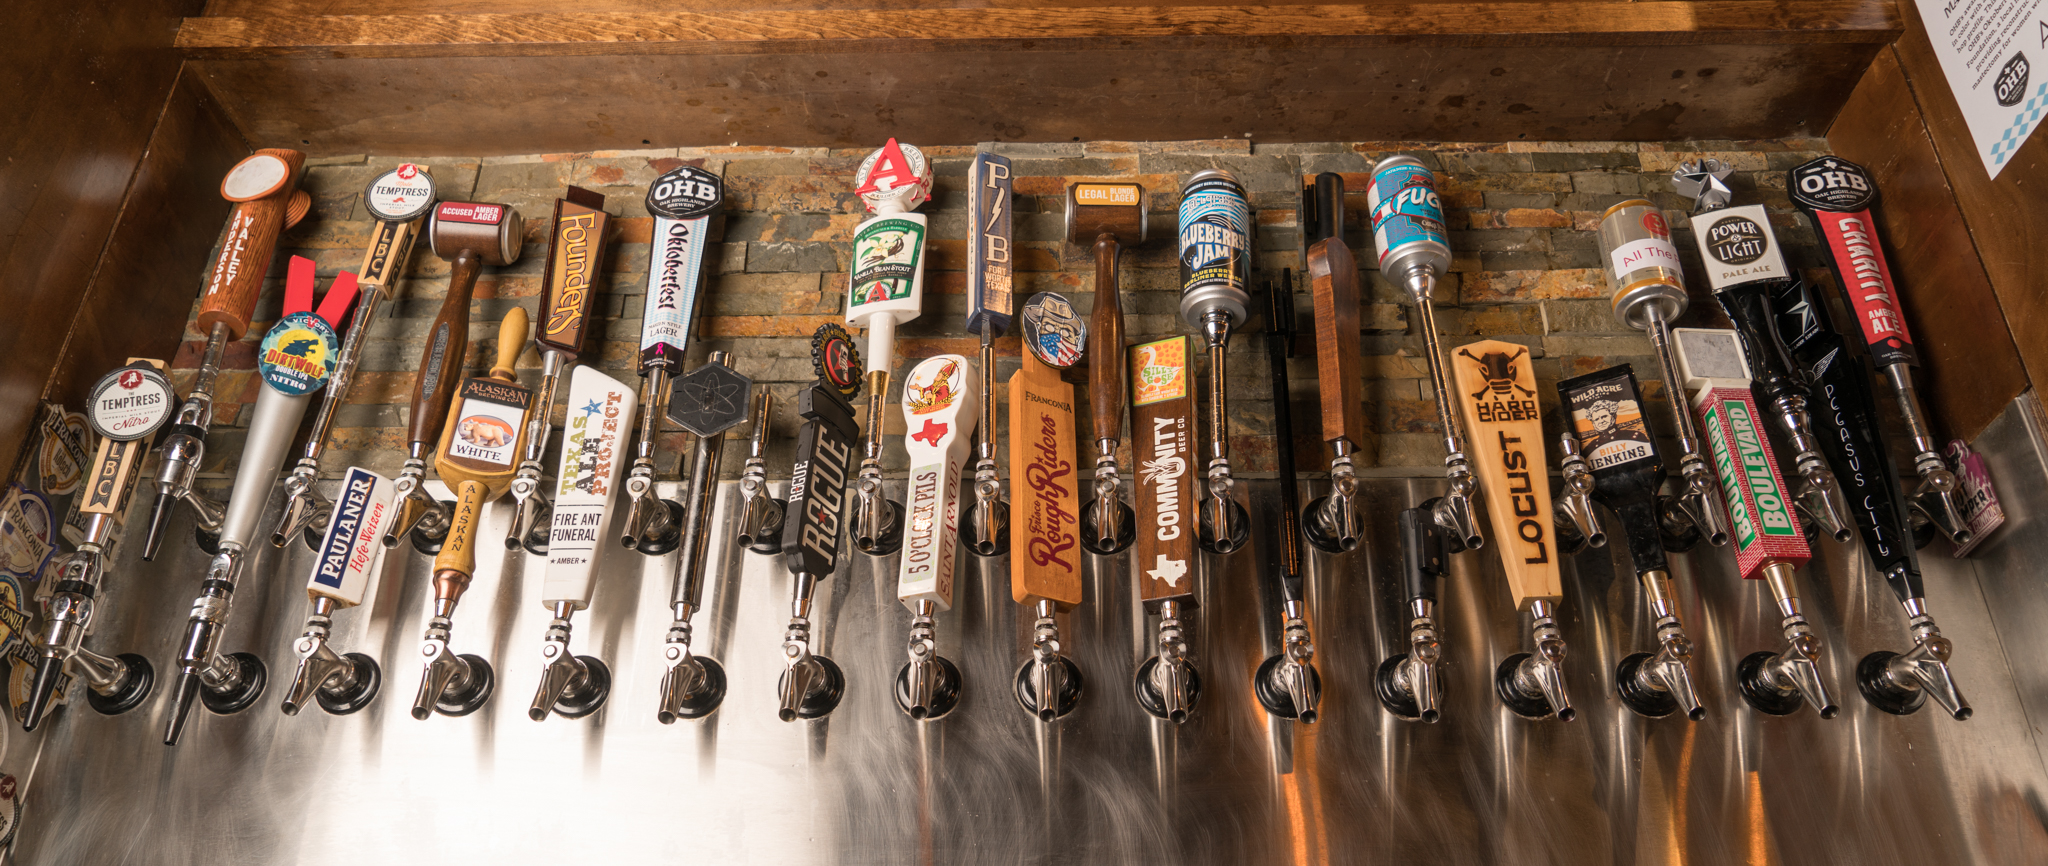 21 Hottest Beer Bars in Dallas–Fort Worth - Zagat